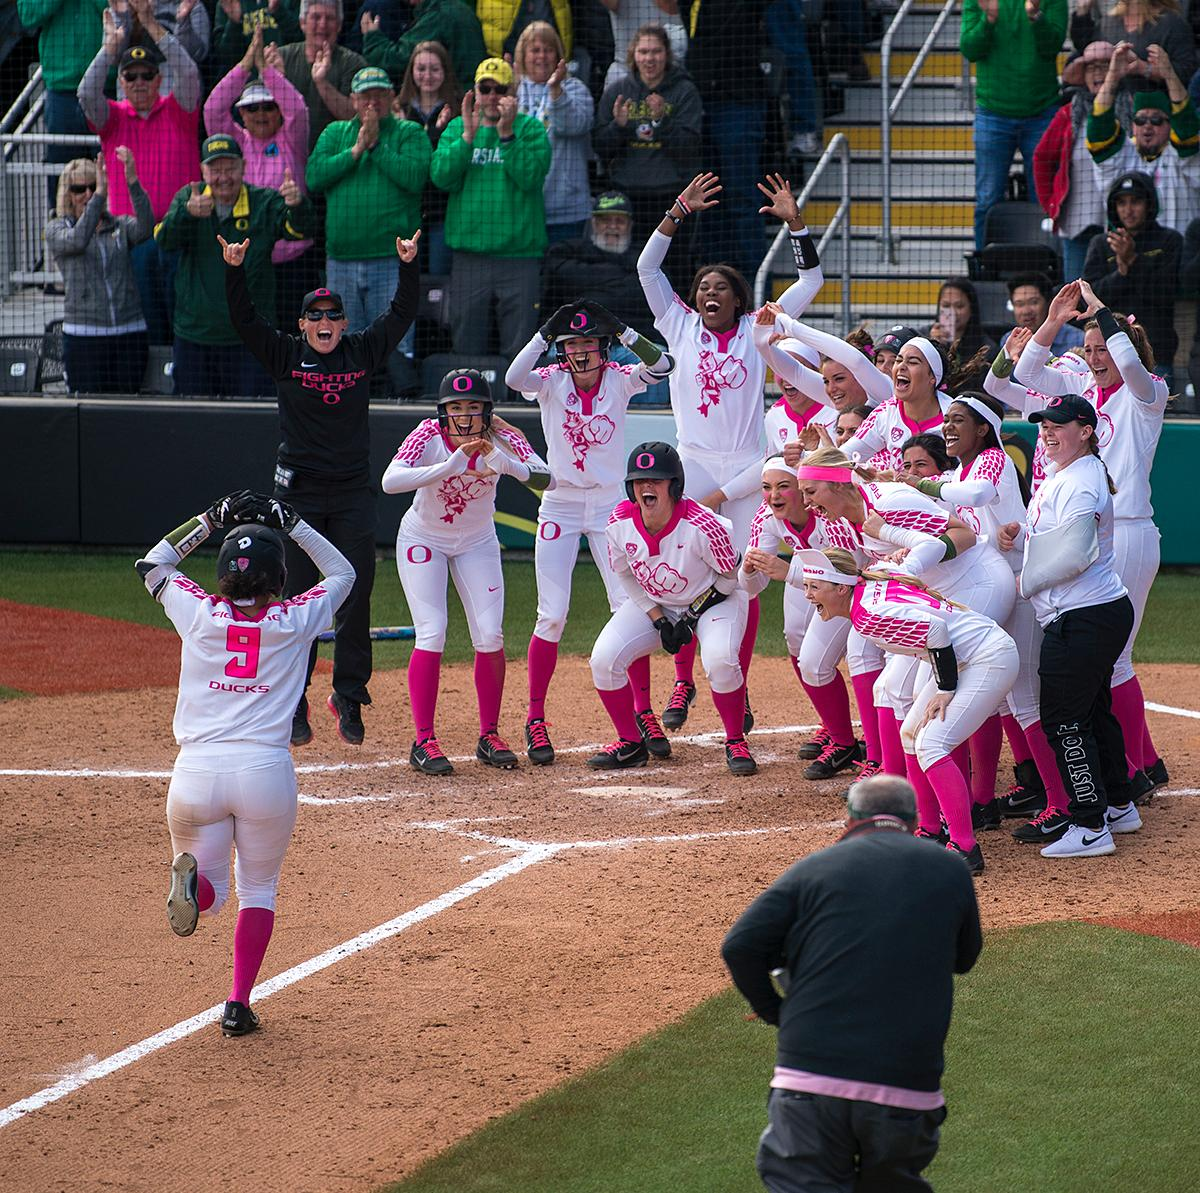 The Oregon Ducks team and assistant coach Chelsea Spencer cheer on outfielder Shannon Rhodes (#9) to home plate after her three-run walk-off homer in the final inning to win the game.The University of Oregon Ducks defeated the UCLA Bruins 3-0 in the final game of a three-game series Sunday afternoon at Jane Sanders Stadium. Shannon Rhodes hit a walk-off three-run homer in the bottom of the 7th inning to win the game. The Ducks improved to 25-5 overall and 2-1 in Pac-12 play. Photo by Abigail Winn, Oregon News Lab